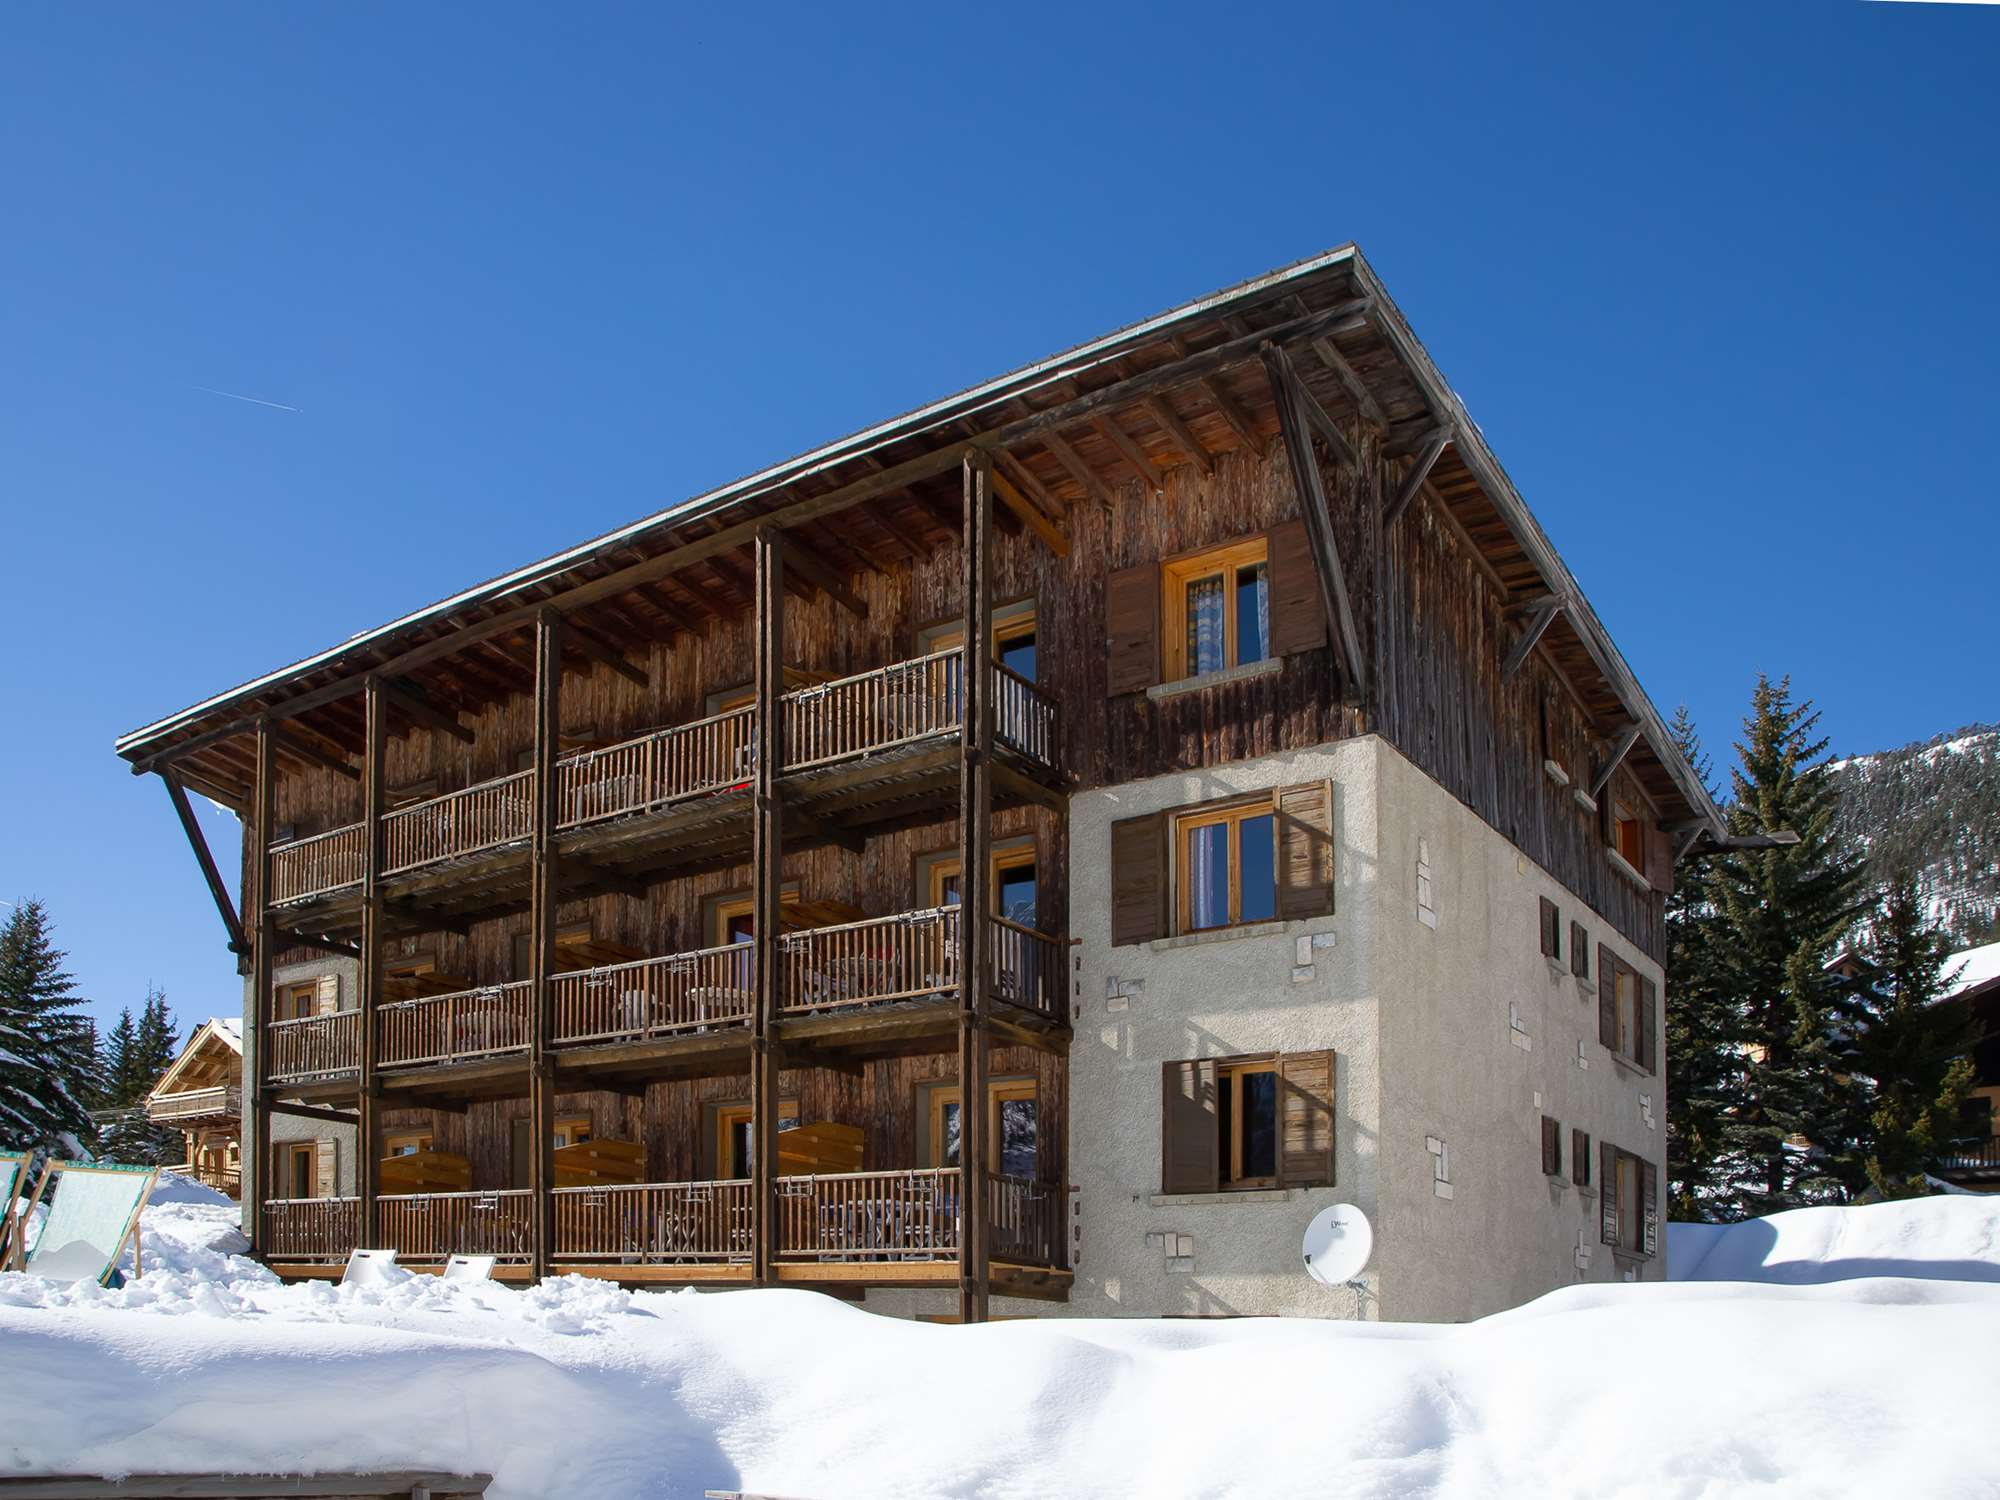 The Chalet-Hotel Lucille in Montgenevre